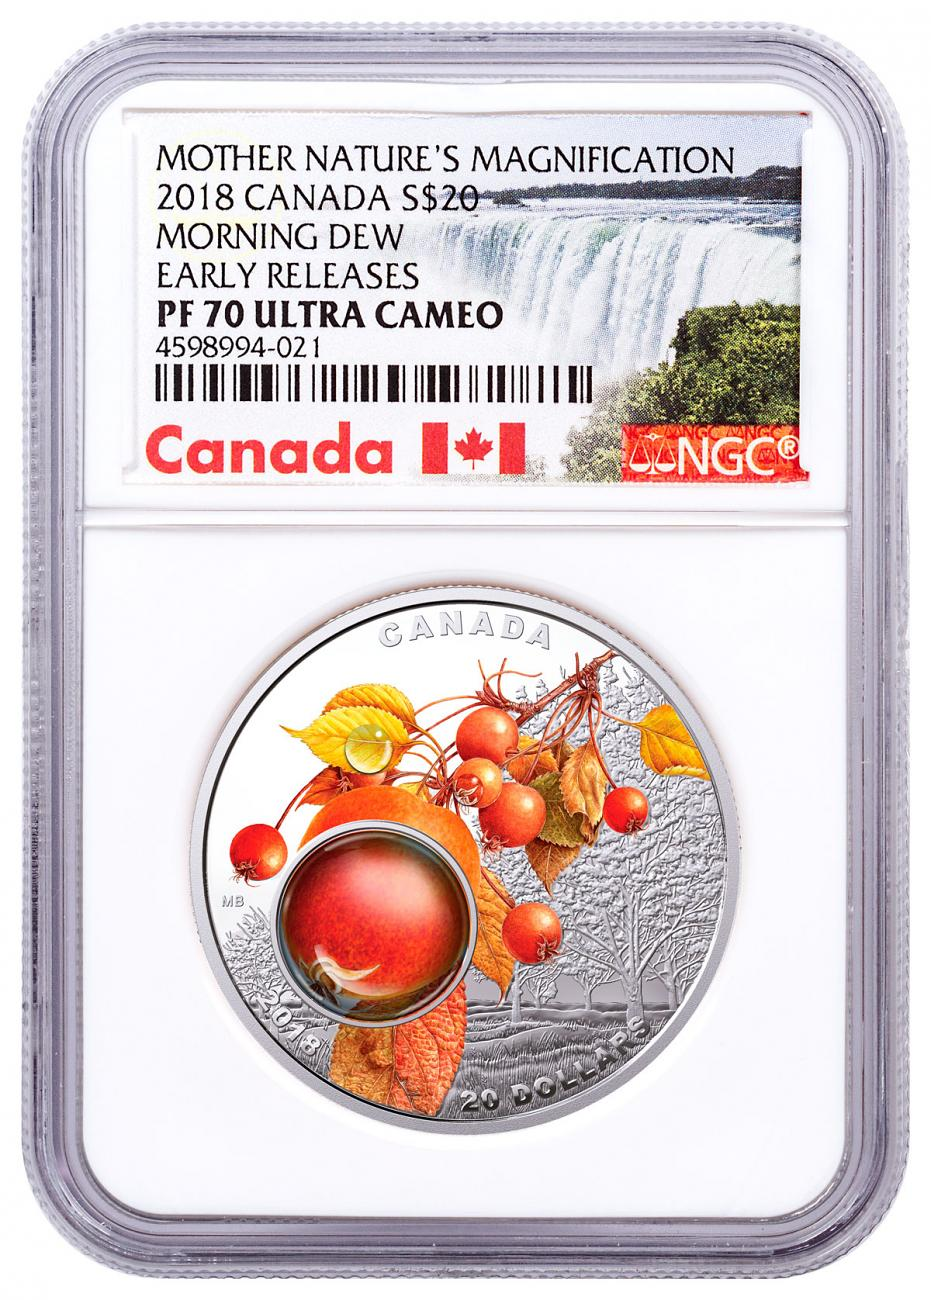 2018 Canada Mother Nature's Magnification - Morning Dew 1 oz Silver Colorized Proof $20 Coin NGC PF70 UC ER Exclusive Canada Label